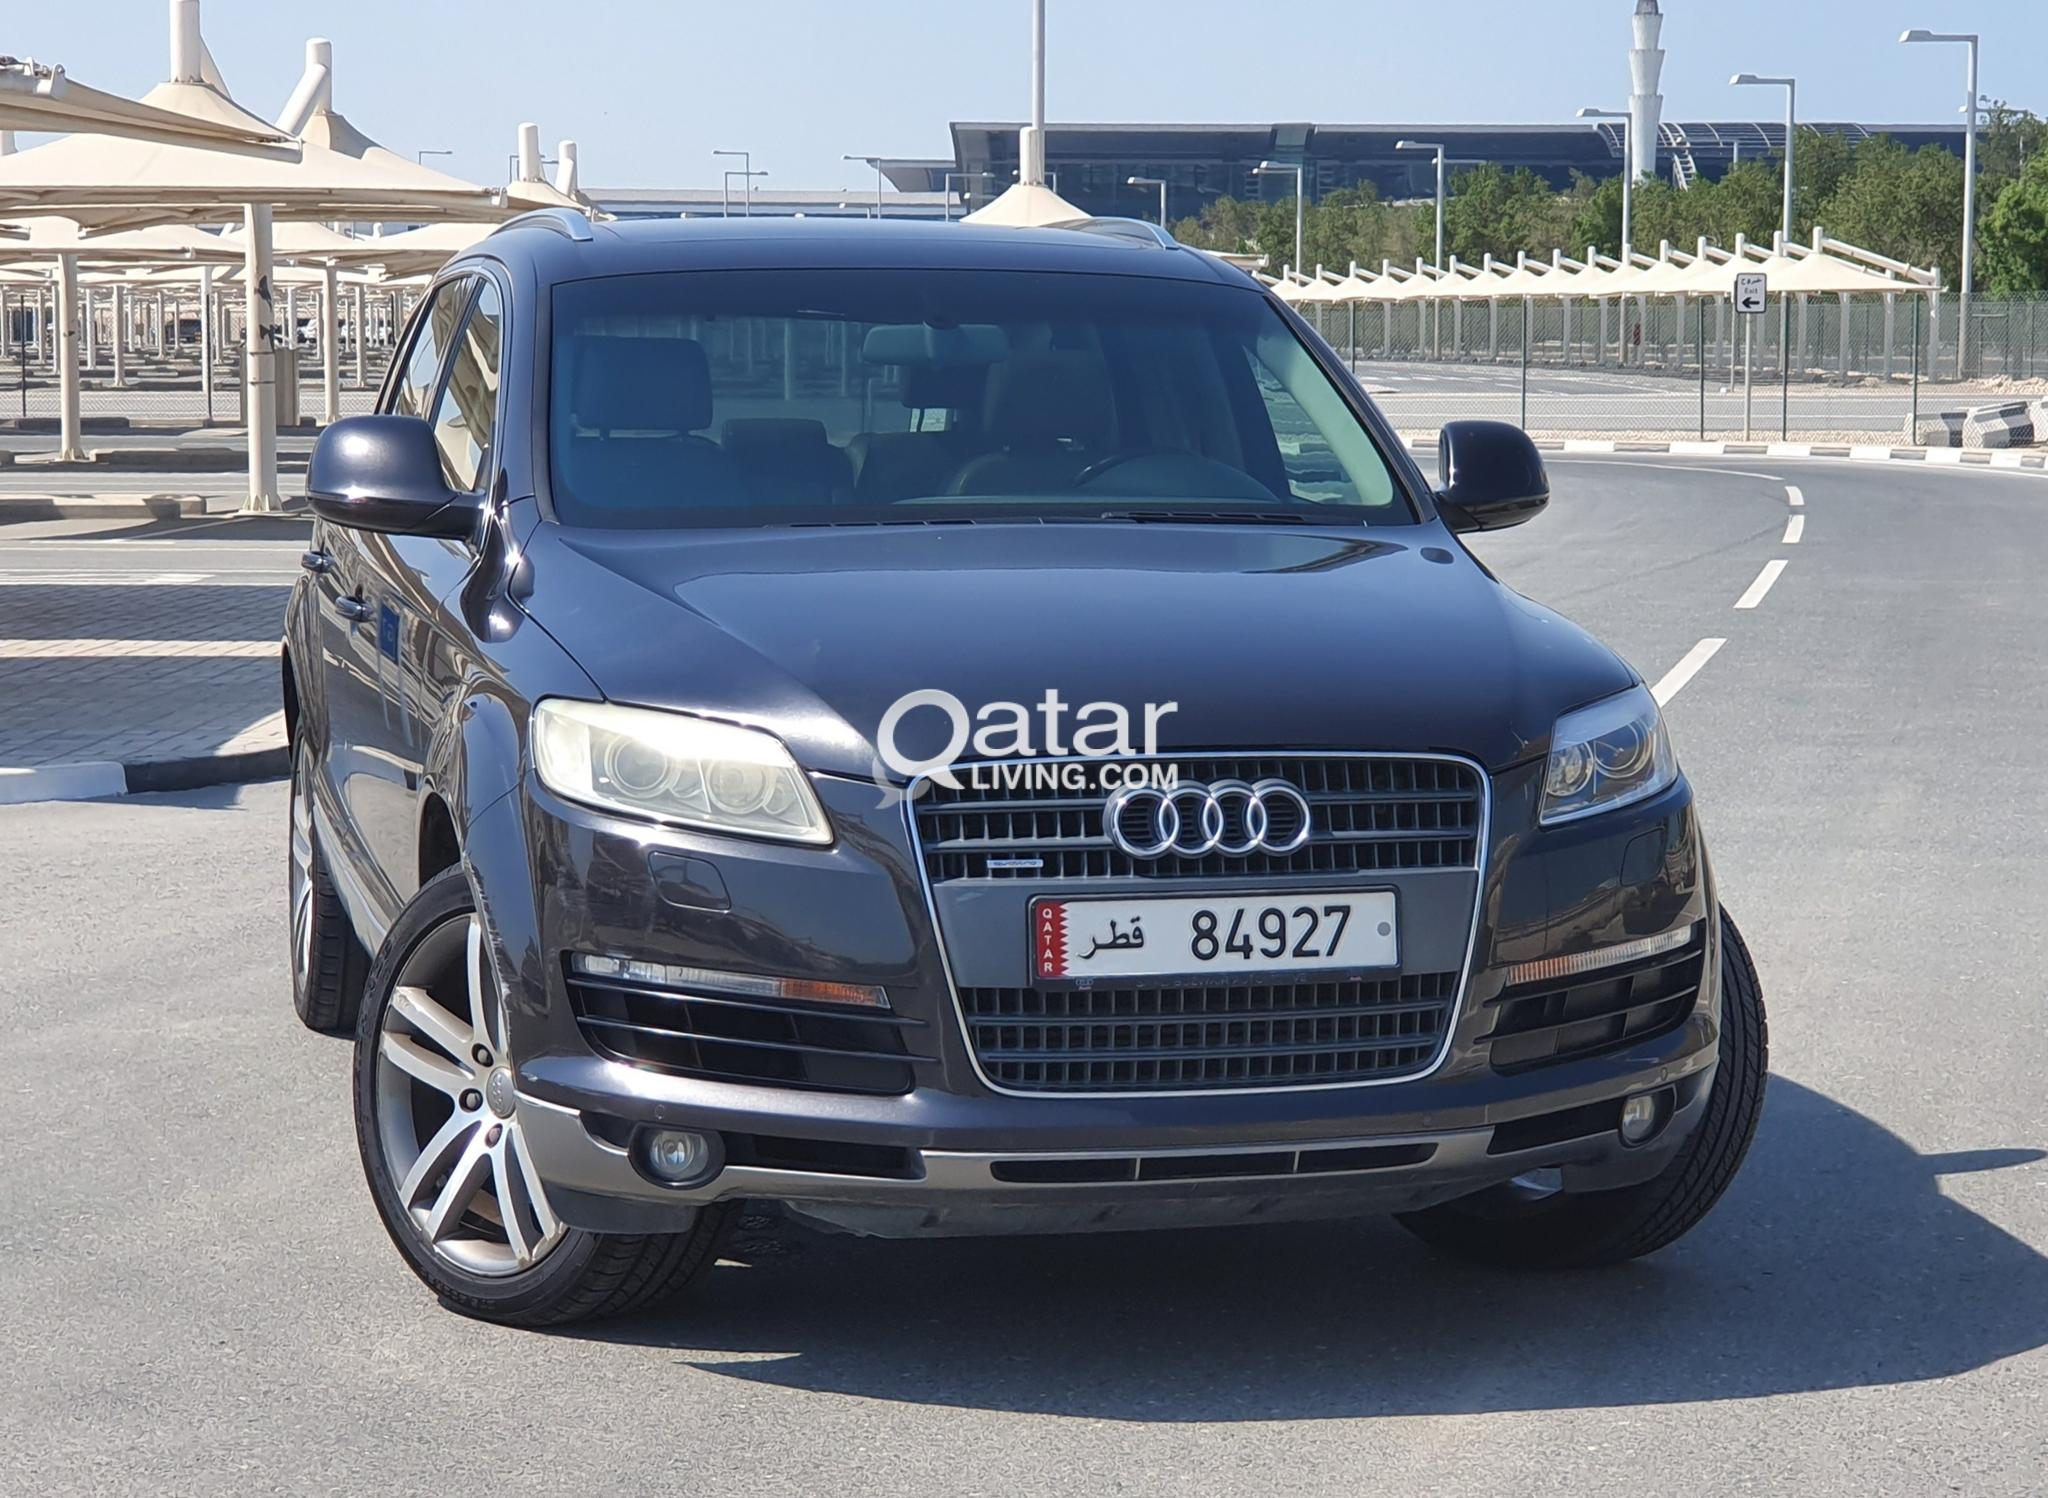 Audi Q7 2009 V8 Fully Loaded Options | Qatar Living